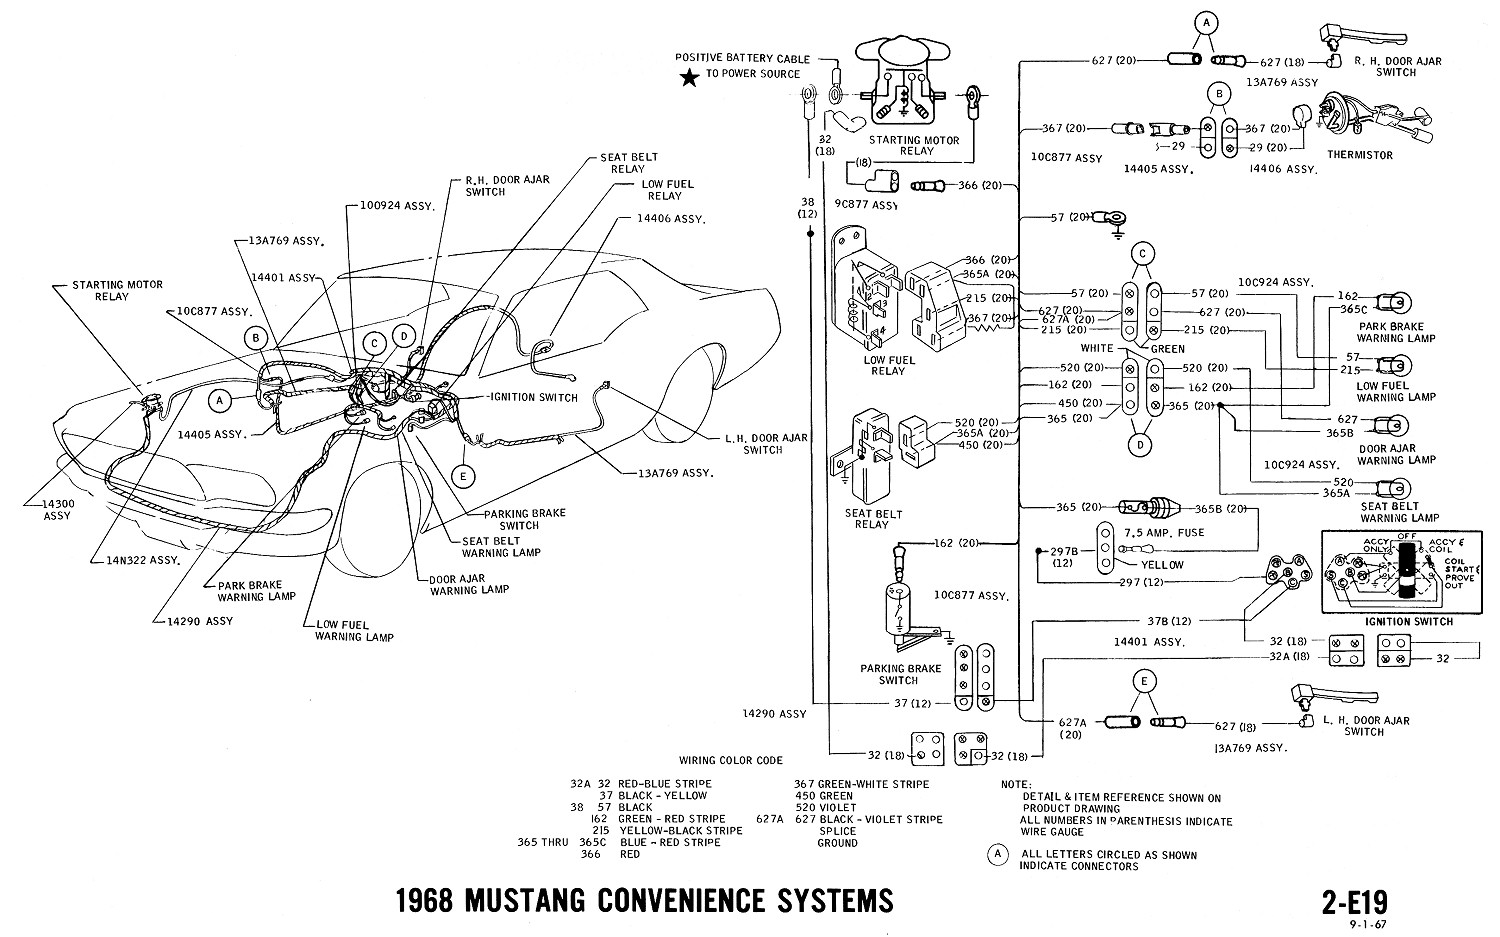 1969 ford mustang wiring diagram auto electrical wiring diagram 1969 Jeep CJ5 Wiring-Diagram ignition wiring diagram 1968 mustang wiring diagrams and vacuum schematics 1969 mustang